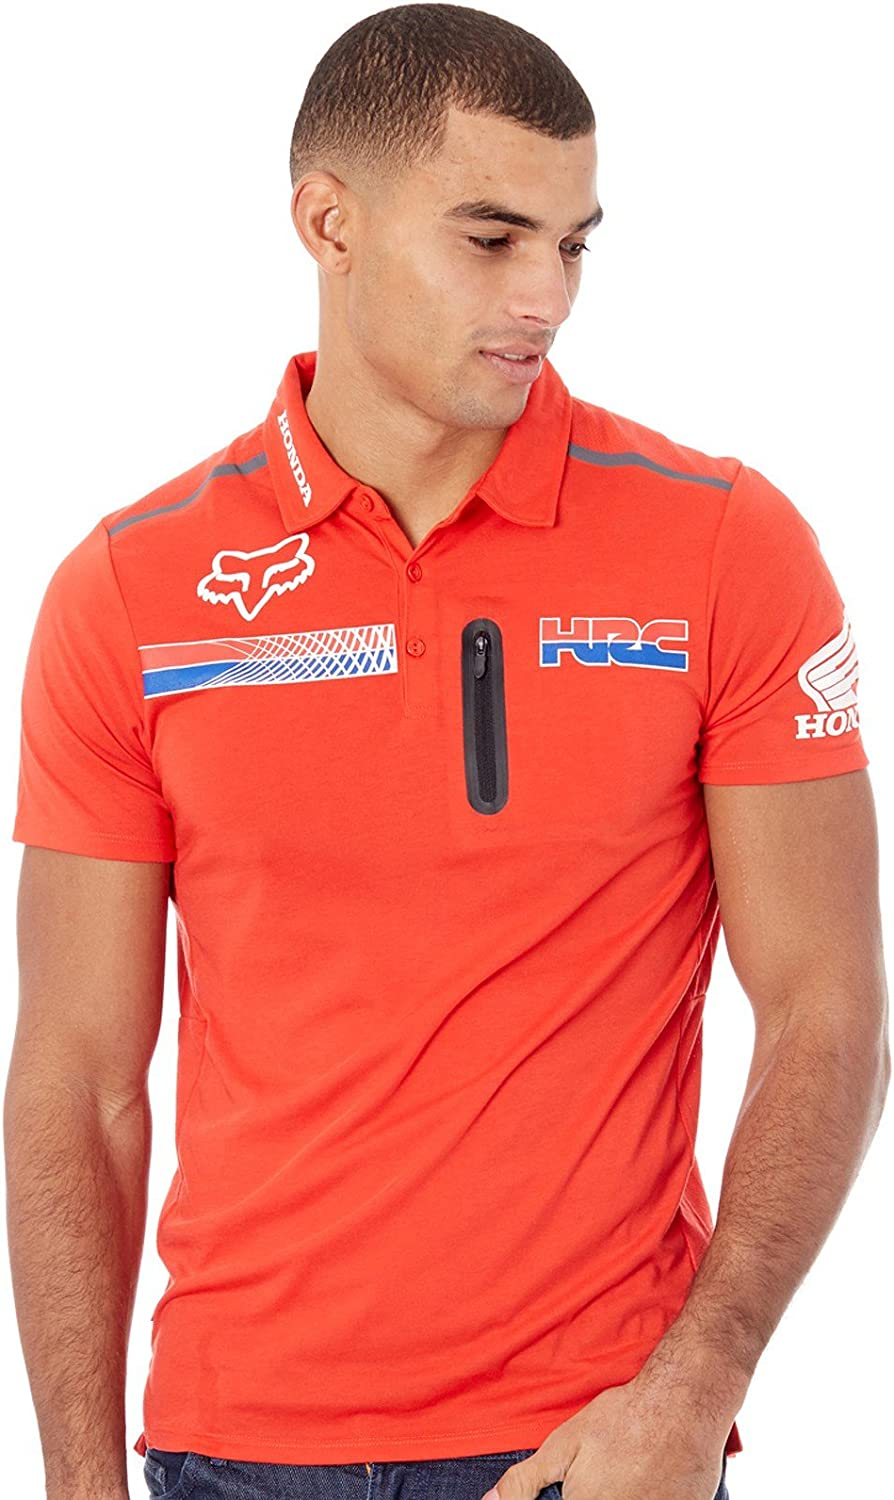 Pit HRC Tech SS Polo [Fox-Honda, FLAME RED] Premium (M): Amazon.es ...